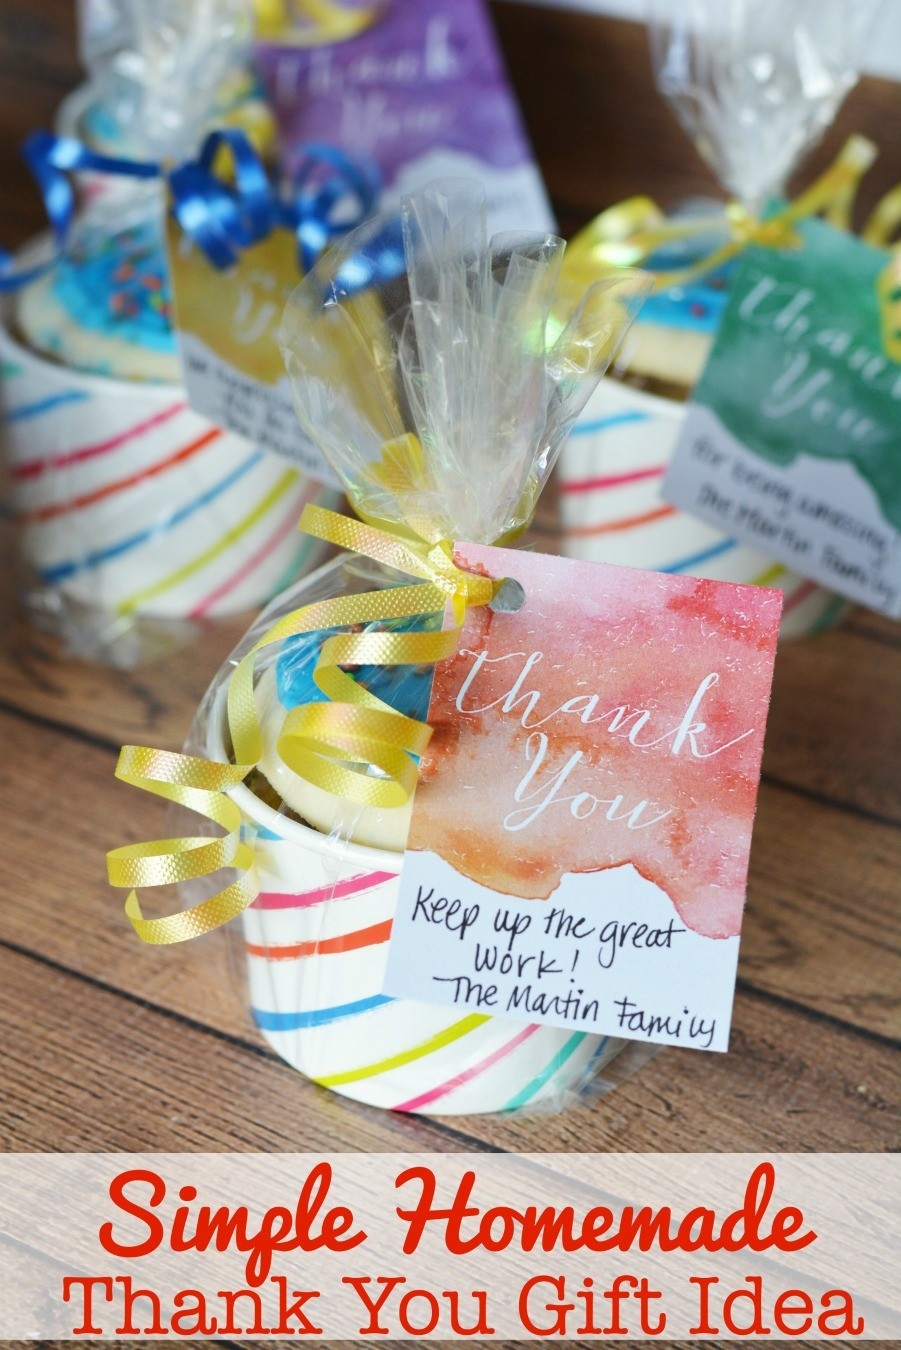 Best ideas about Homemade Thank You Gift Ideas . Save or Pin Simple Homemade Thank You Gift Idea Free Printable Now.